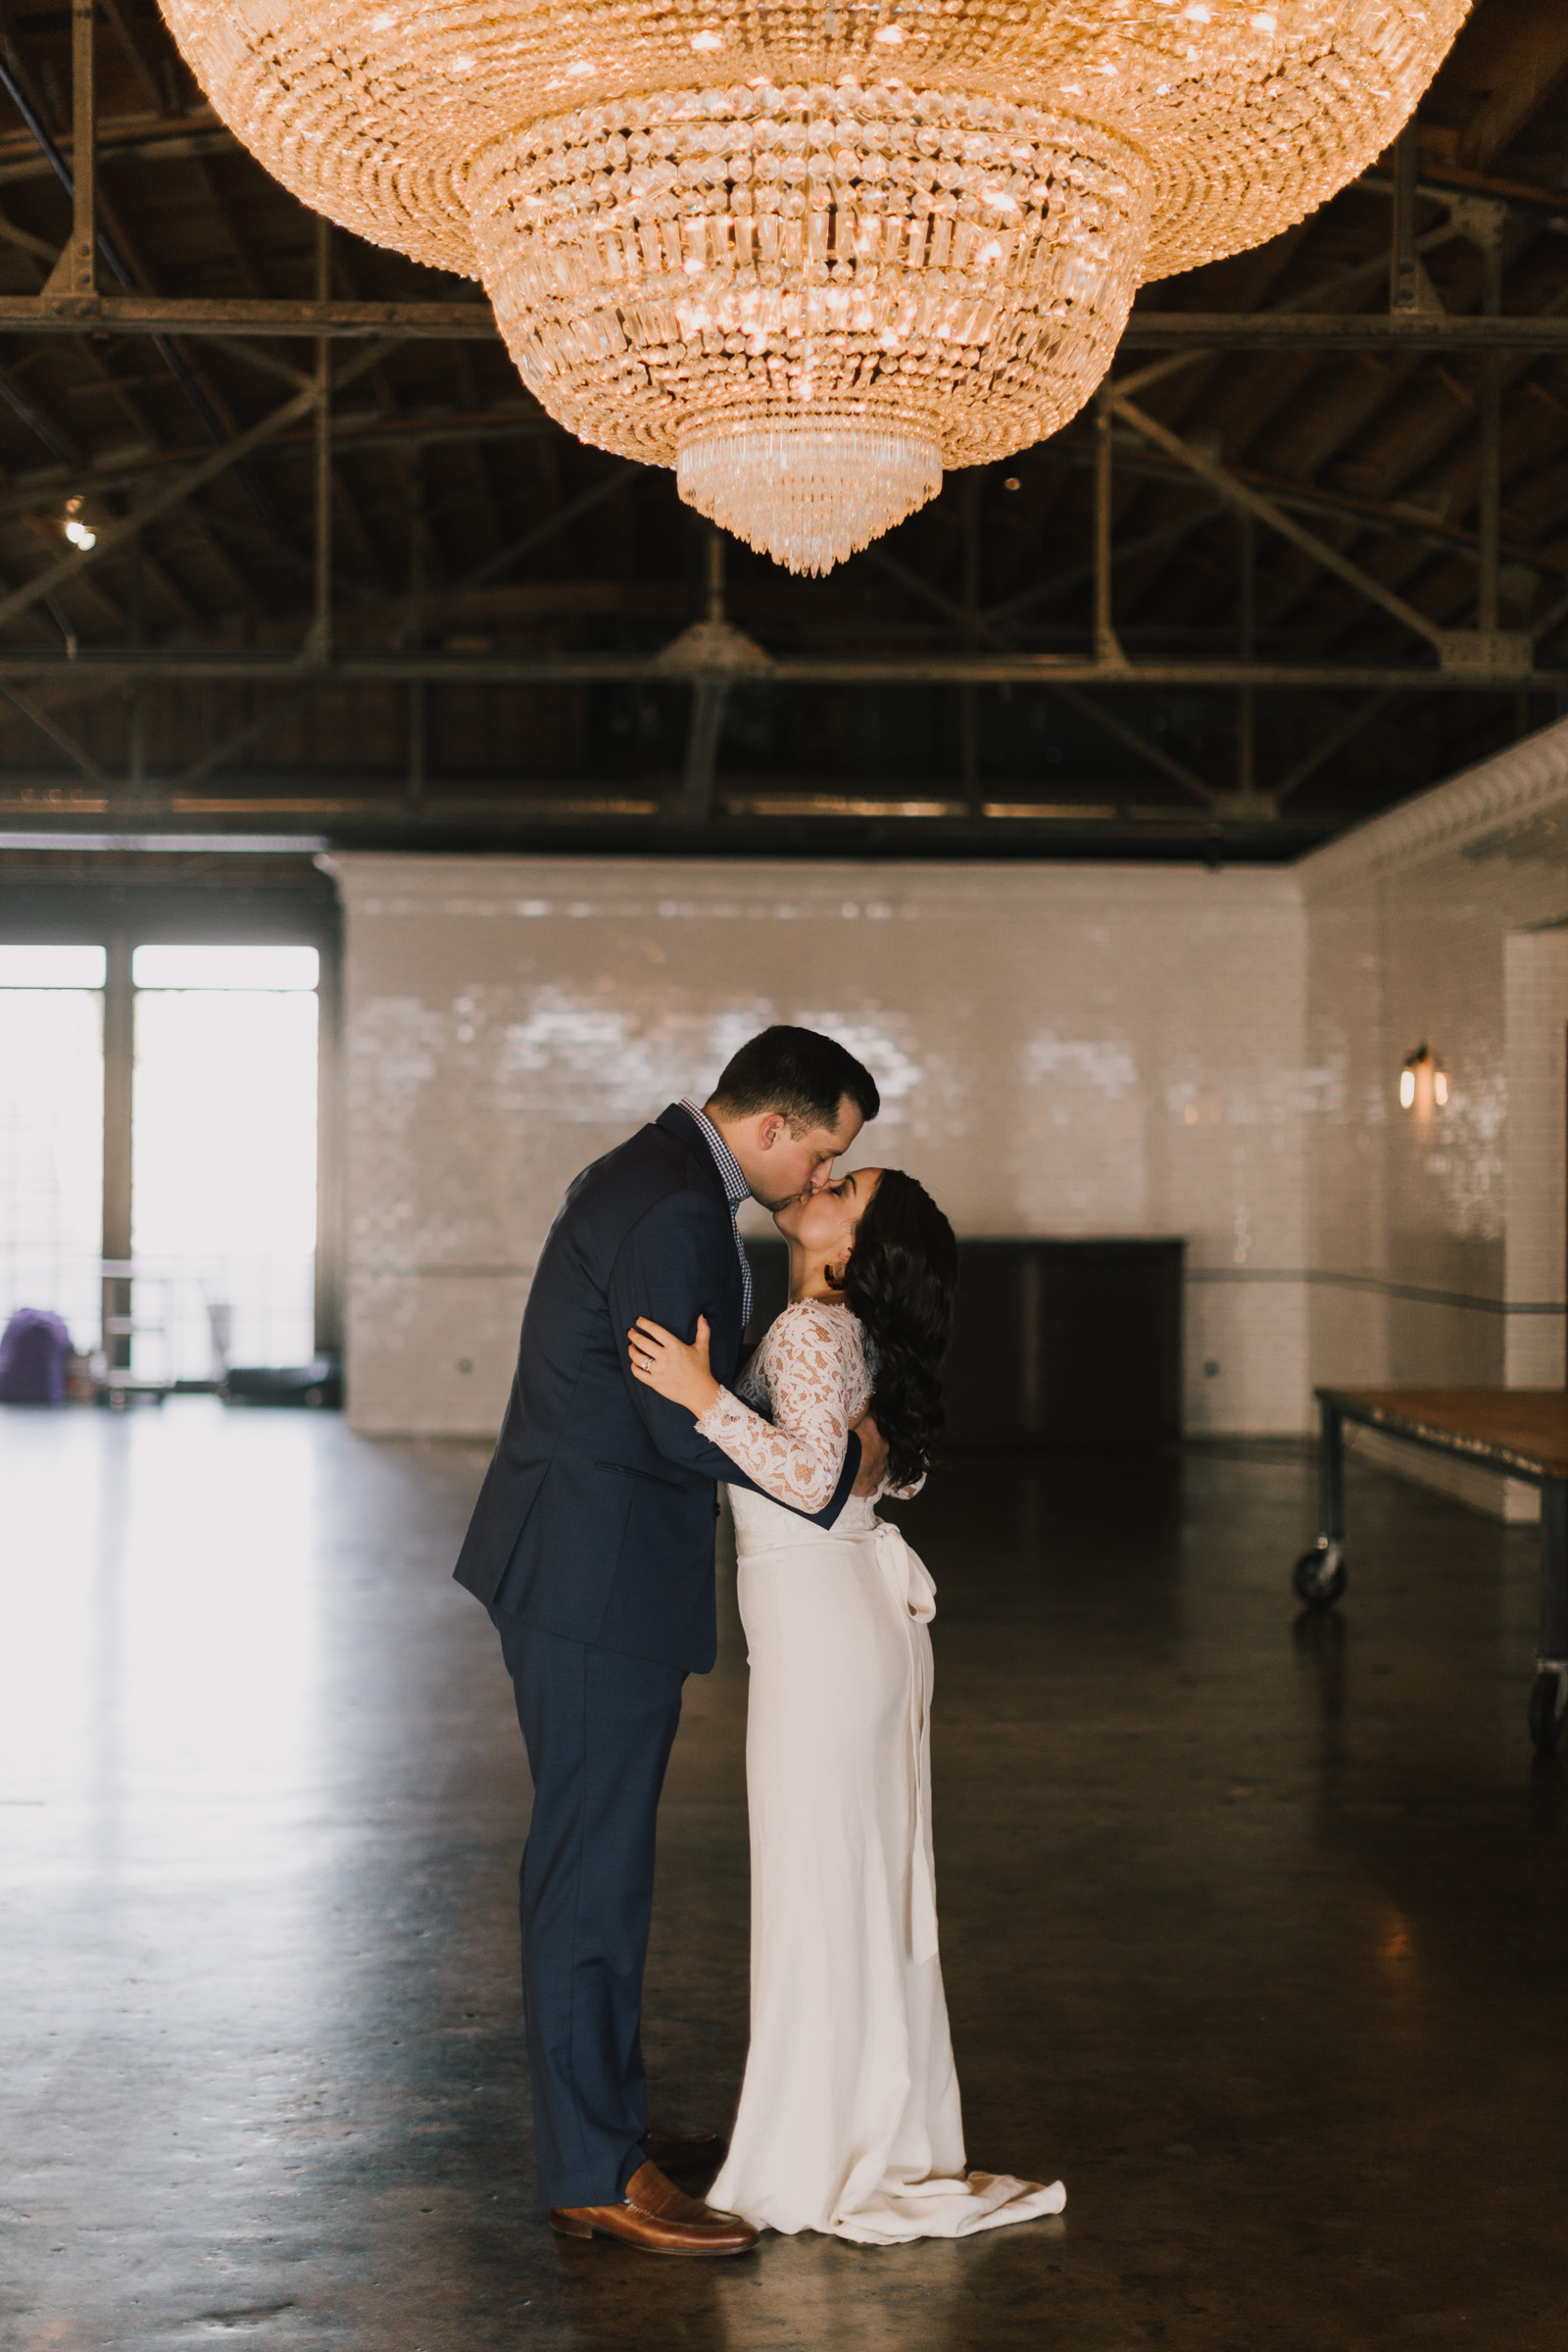 alyssa barletter photography emotional anniversary surprise first dance the guild kansas city crossroads wedding venue-8.jpg